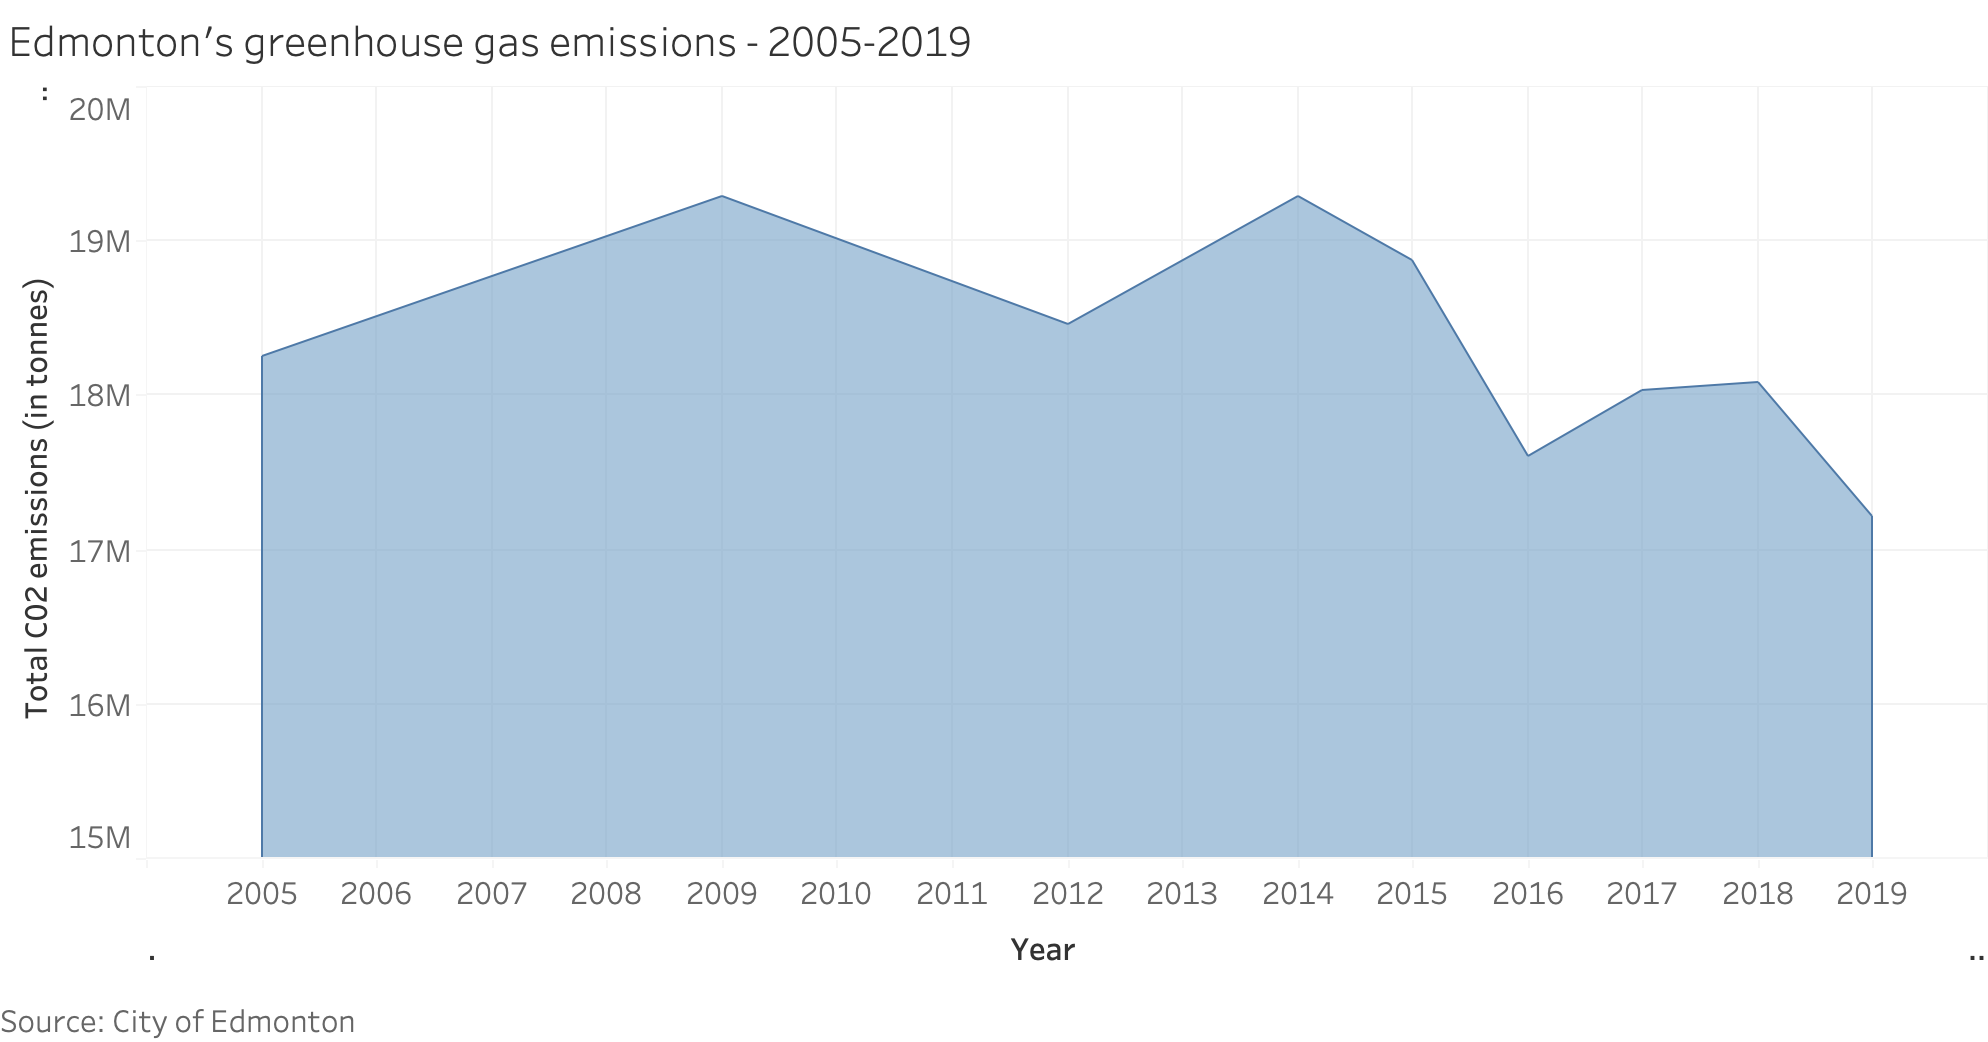 A chart depicting greenhouse gas emissions in Edmonton between 2005 and 2019.